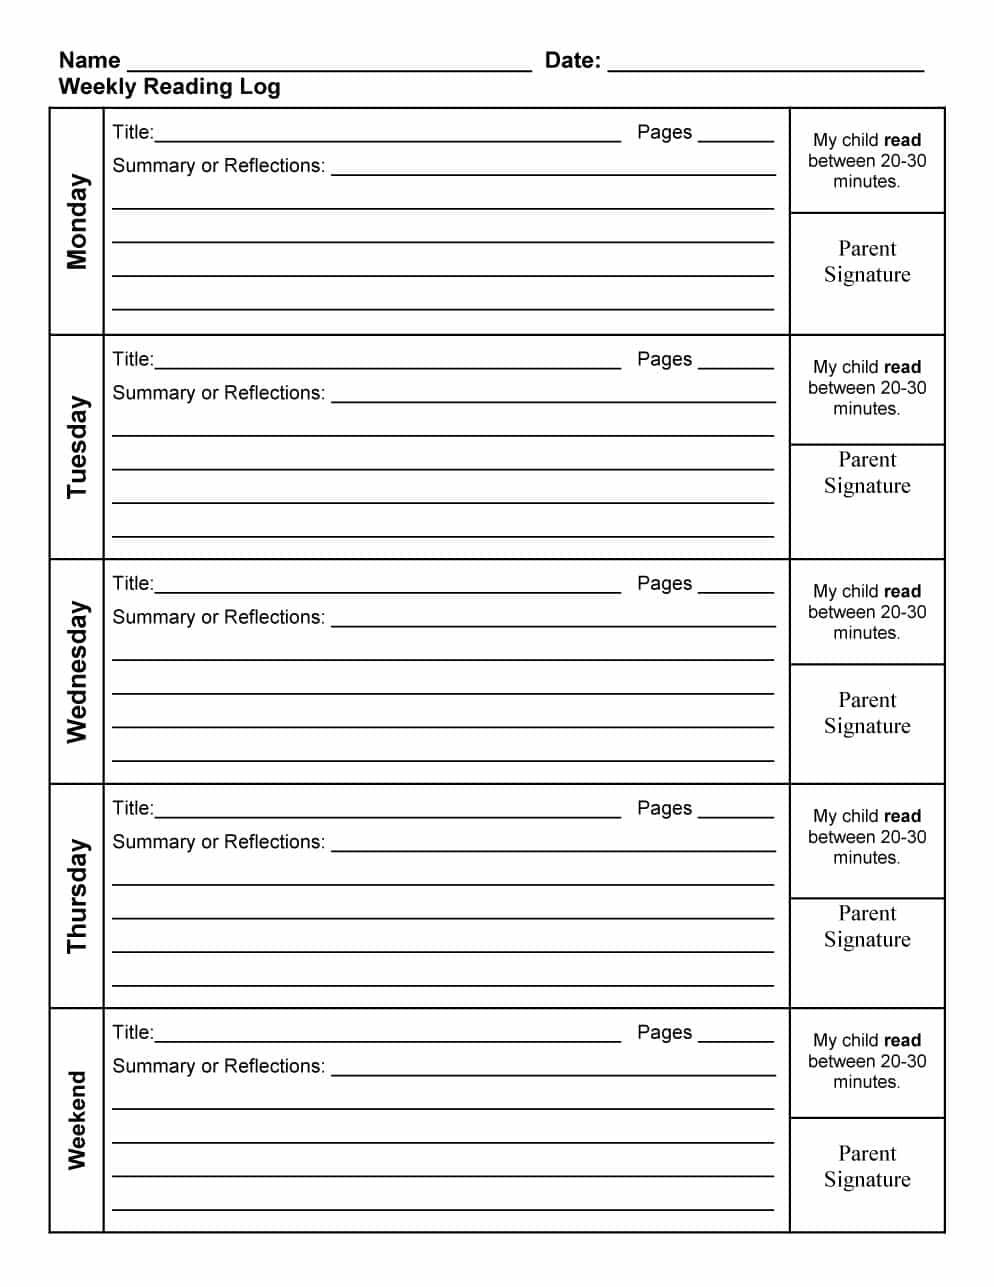 Free Reading Log Template 19 | Reading Log Printable throughout Middle School Reading Log Template